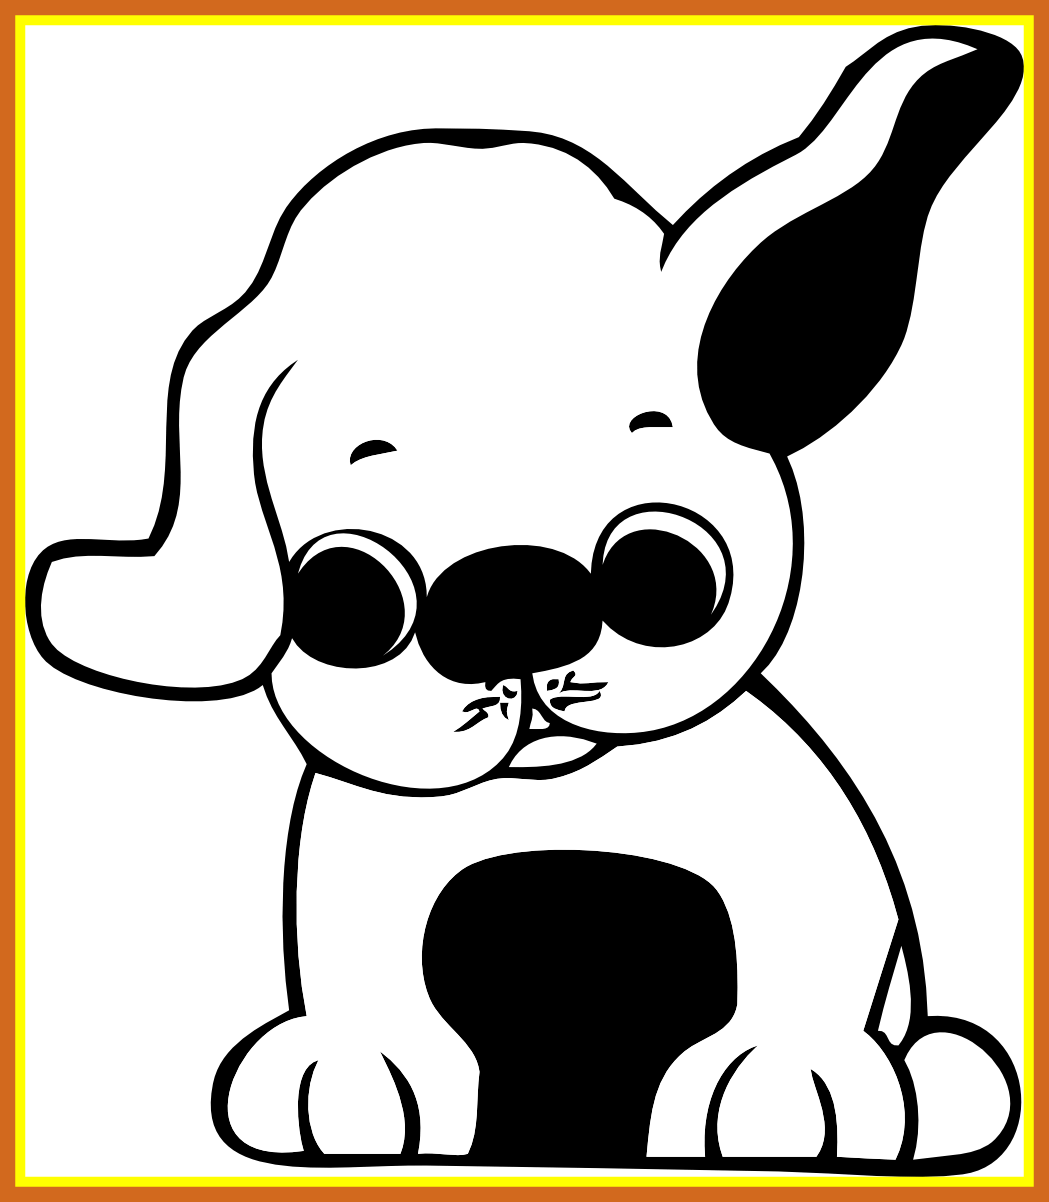 Awesome puppy clip art. Kittens clipart black and white